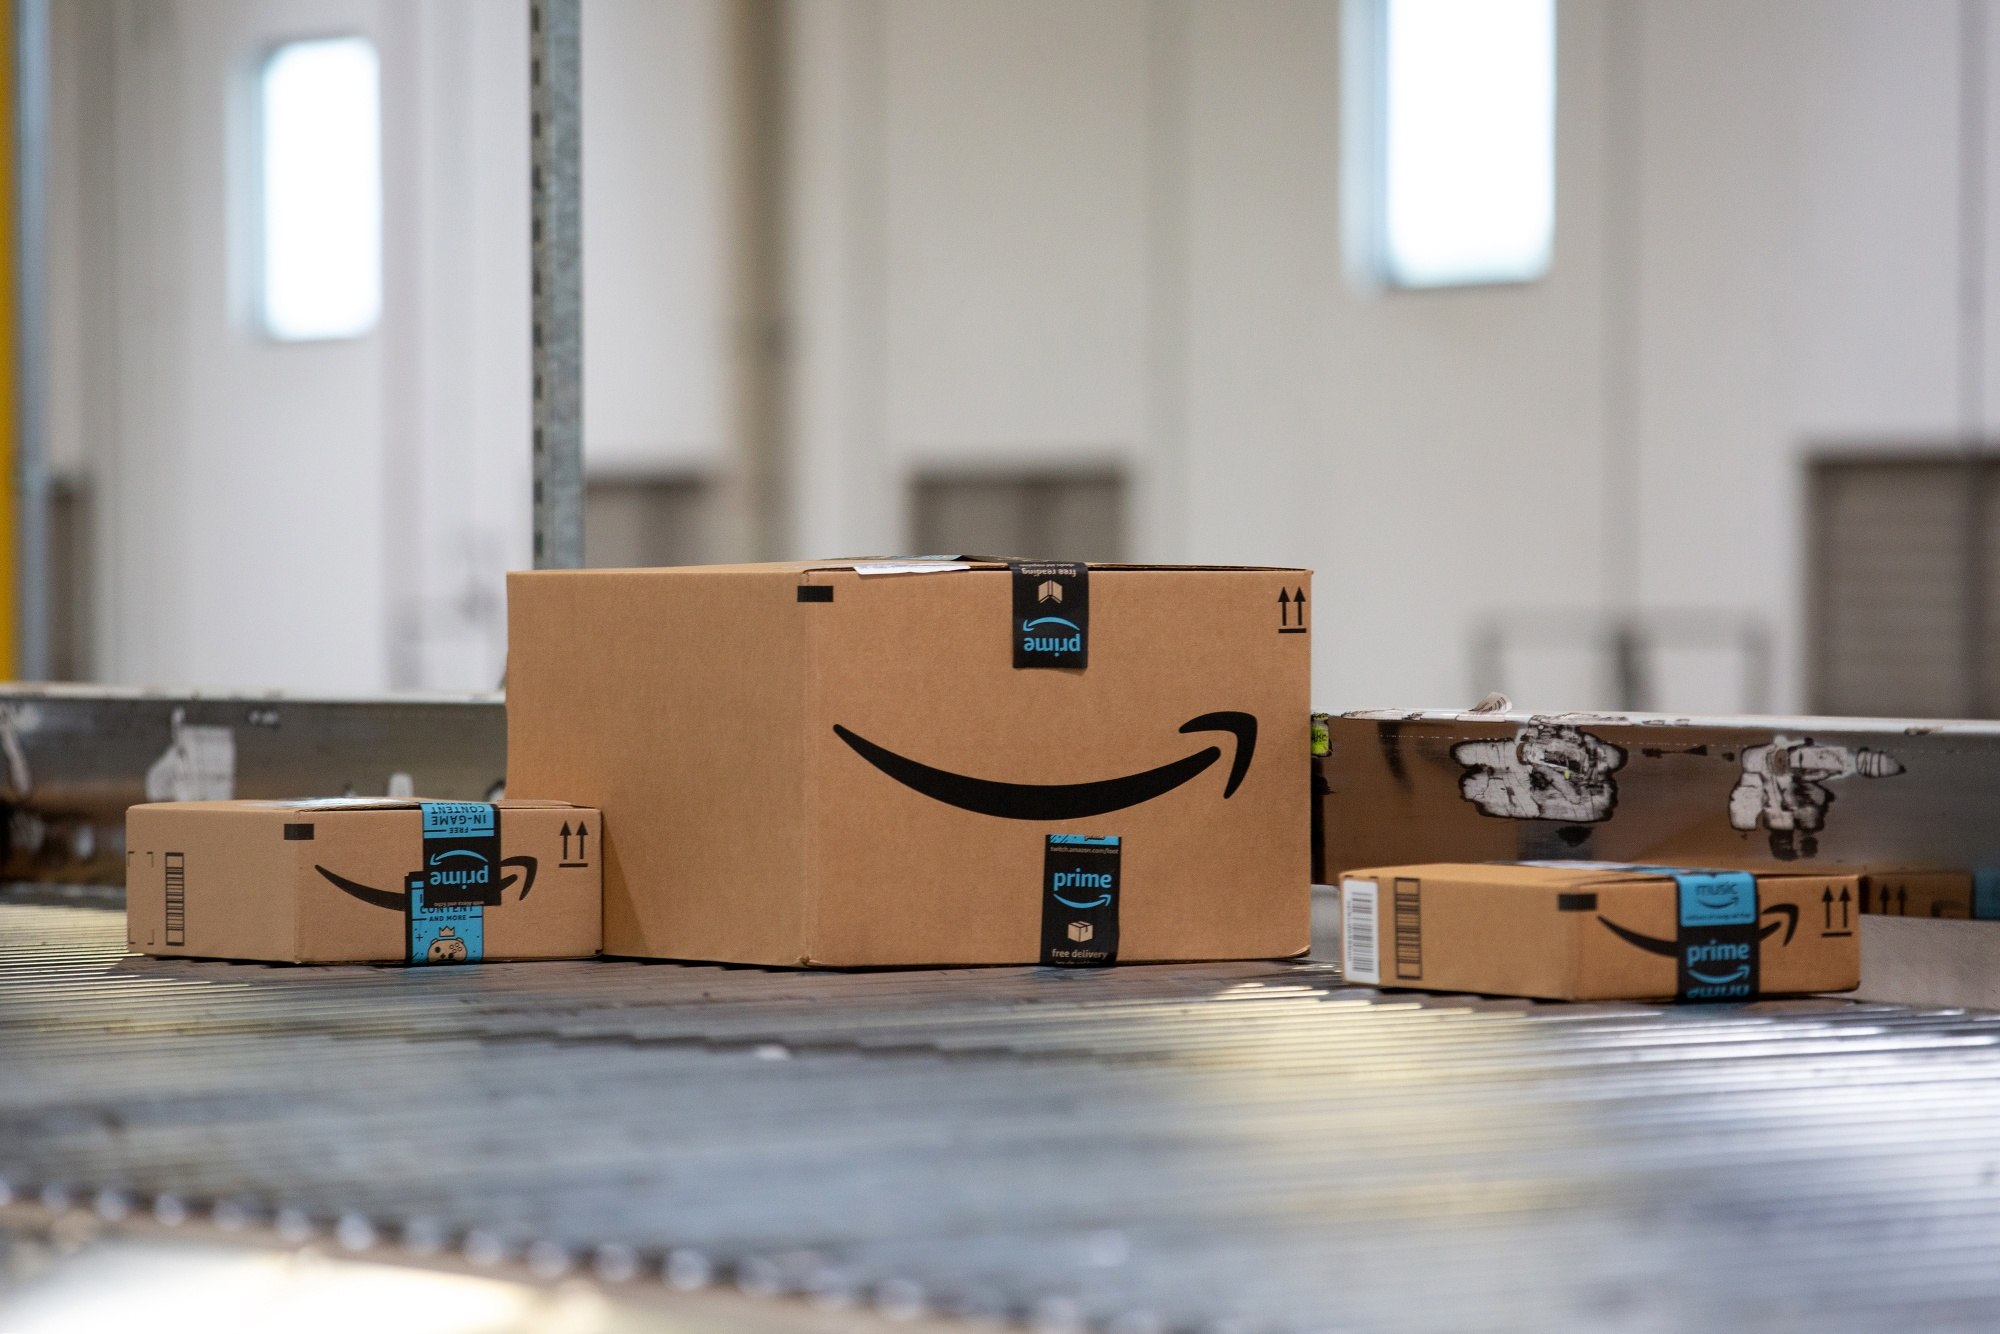 Operations At An Amazon.com Inc. Fulfillment Center During the ICON Conference